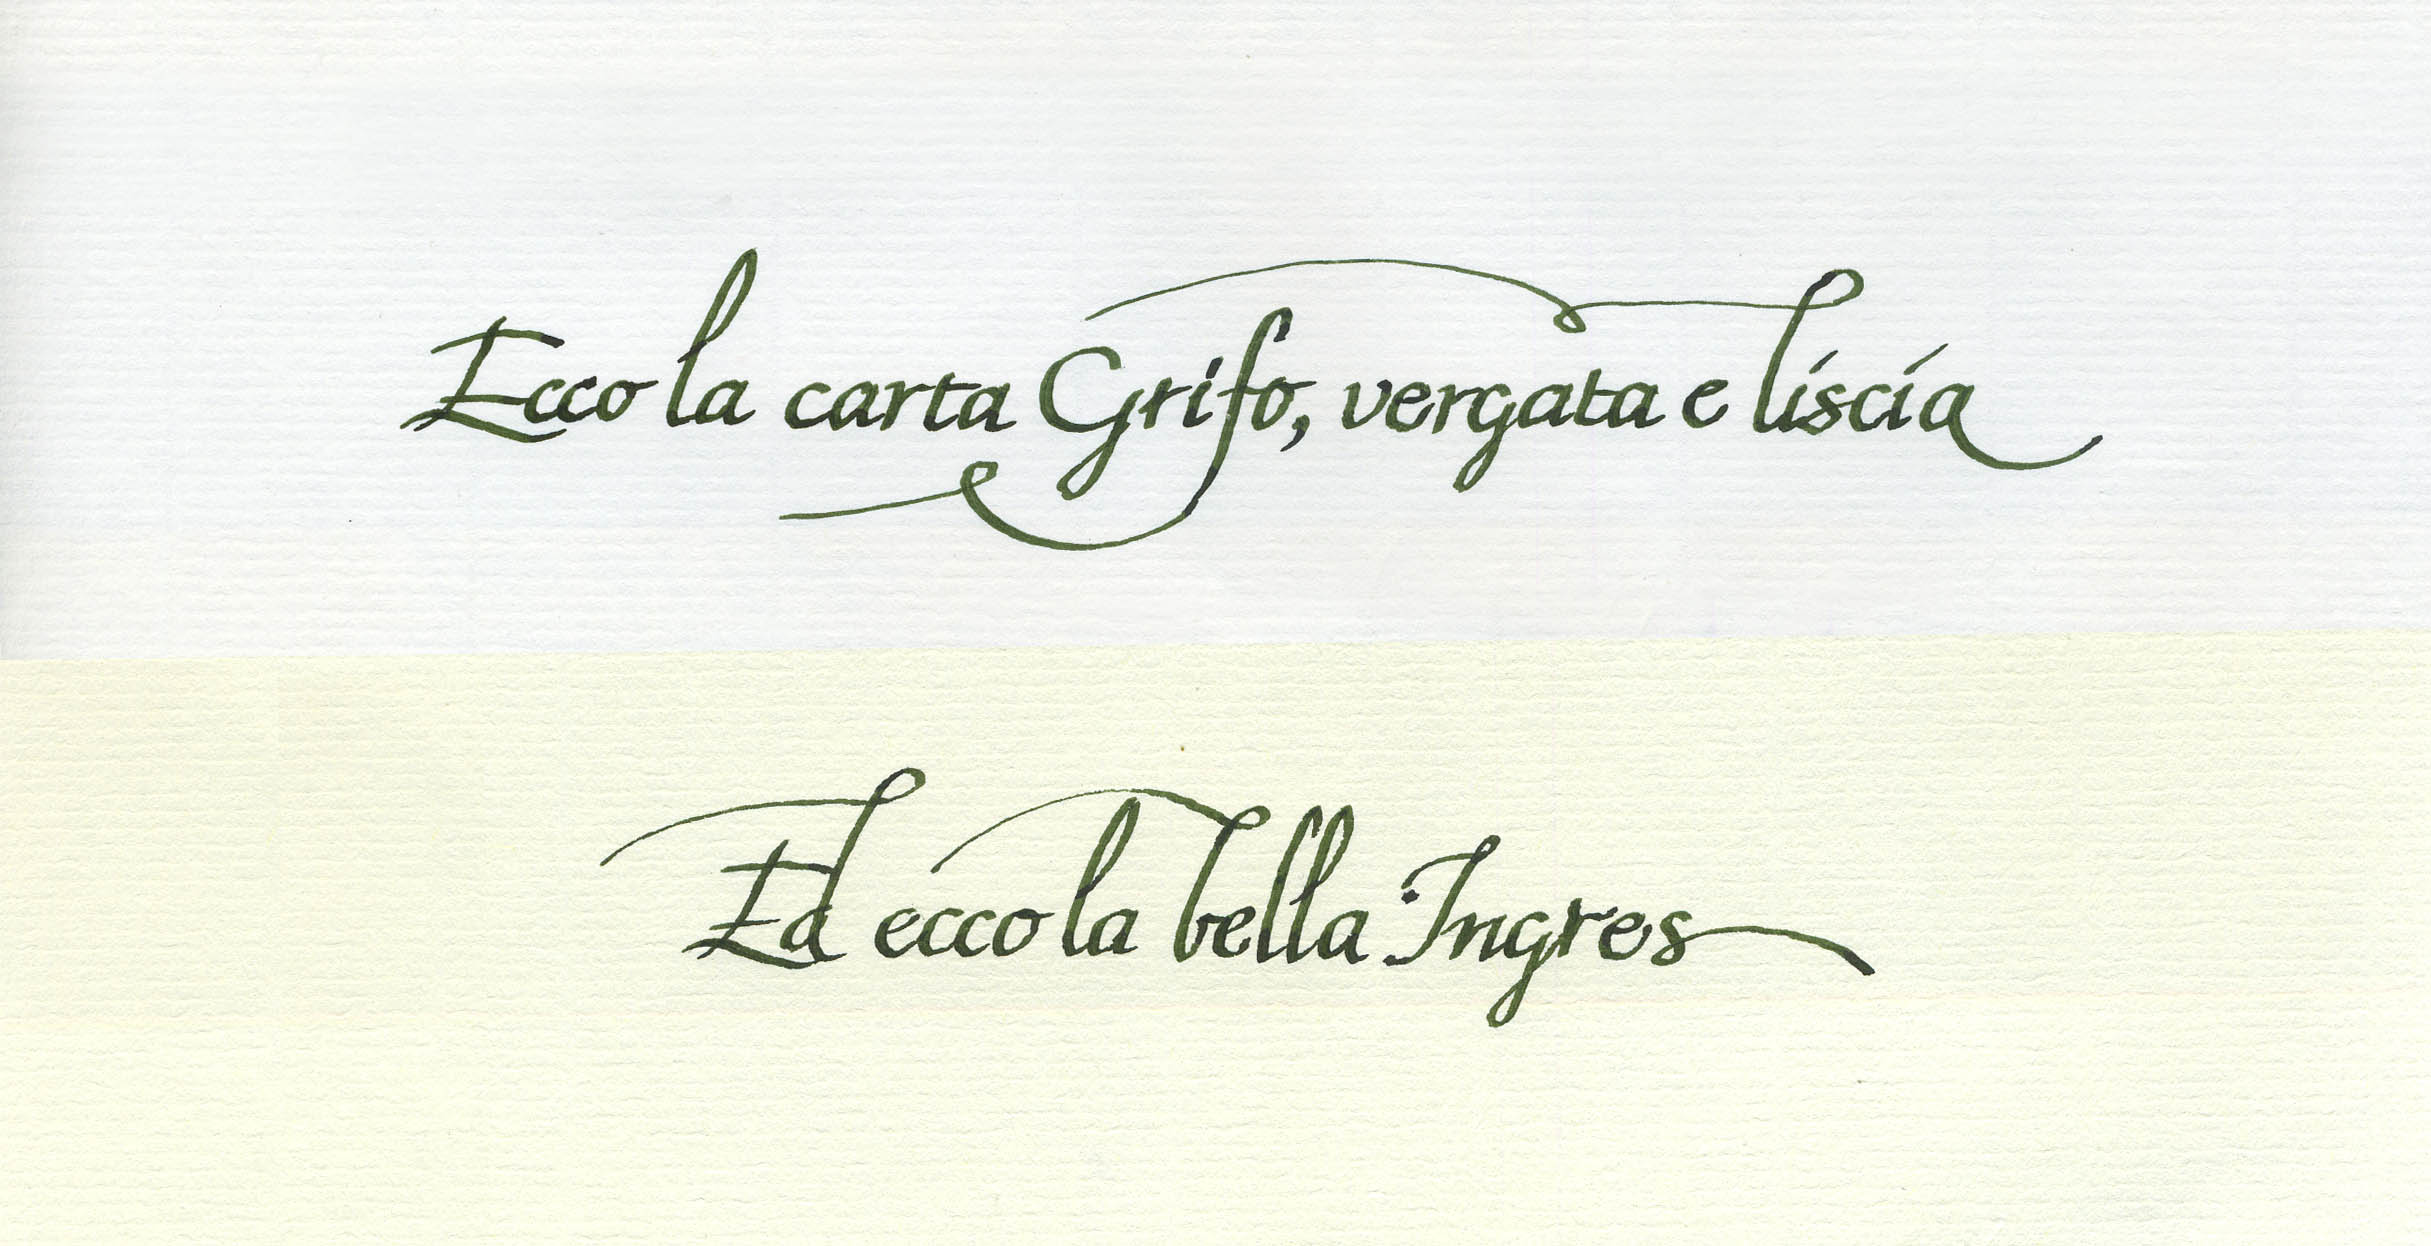 Grifo vs Ingres 1.jpg